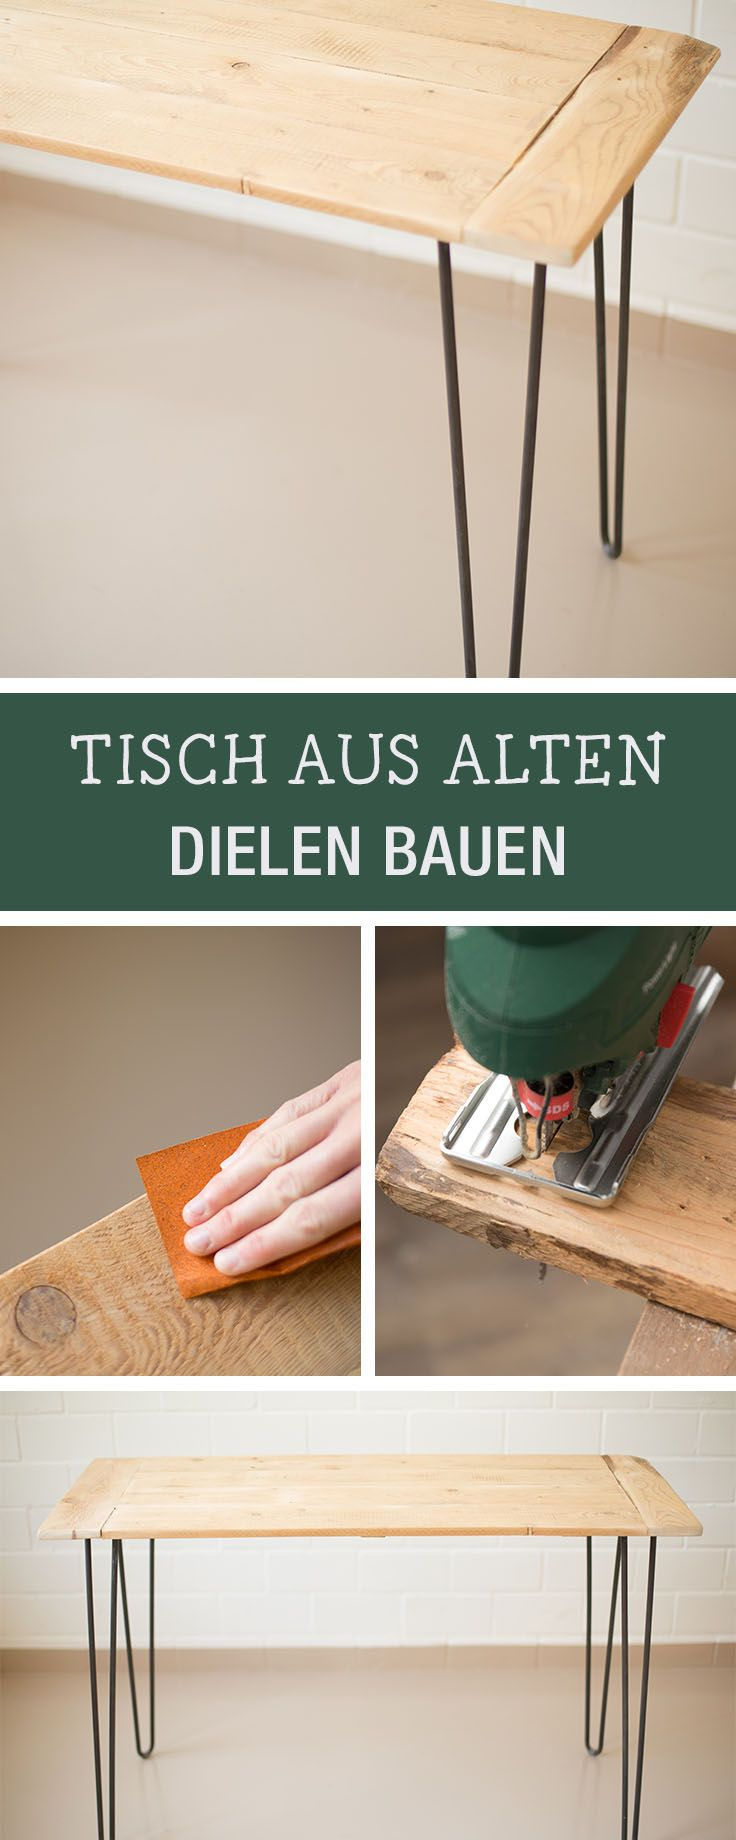 DIY Möbel: Tisch mit Hairpin-Legs aus alten Dielen bauen / diy inspiration for a handmade table made of floorboards via DaWanda.com